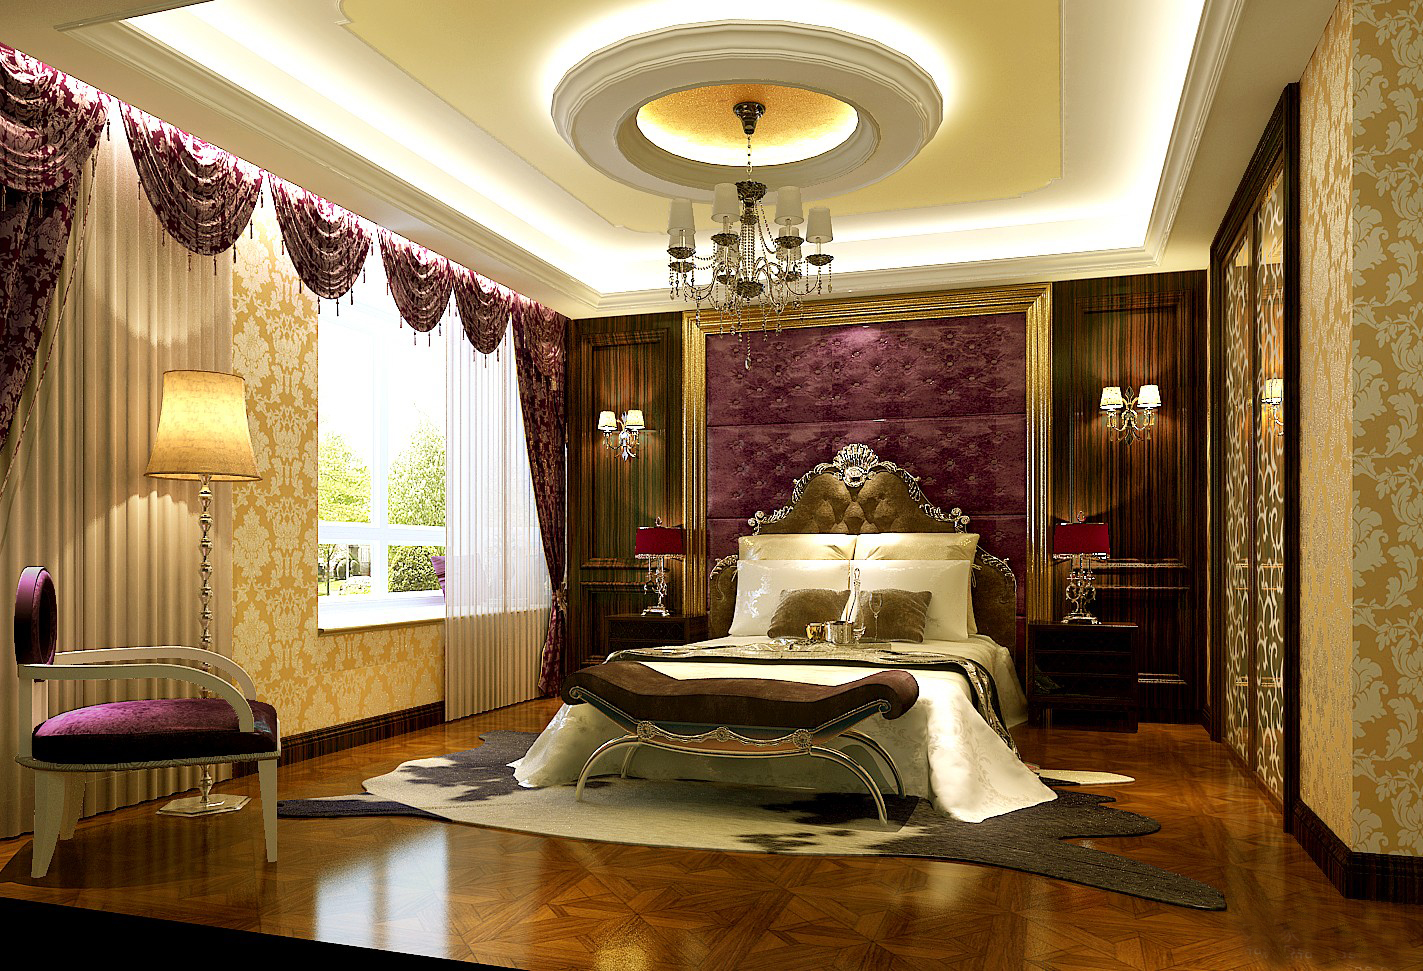 25 latest false designs for living room bed room - Design for bedroom pics ...